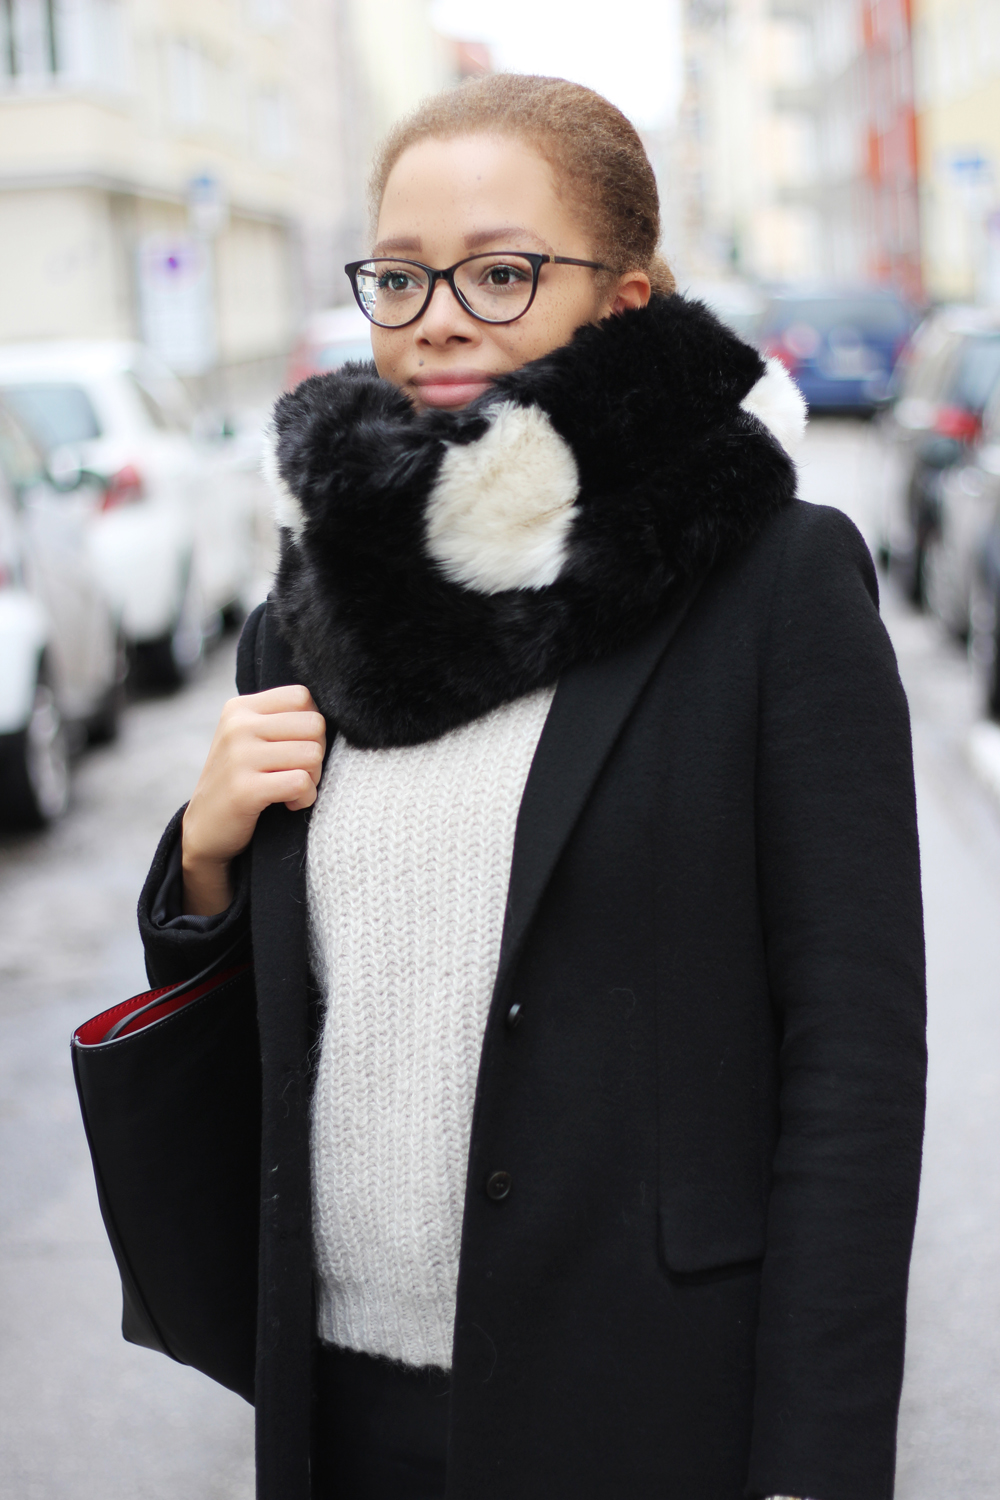 fatimayarie-versace-glasses-snood-blackandwhite-cream-knitsweater-blackcoat-img_5989